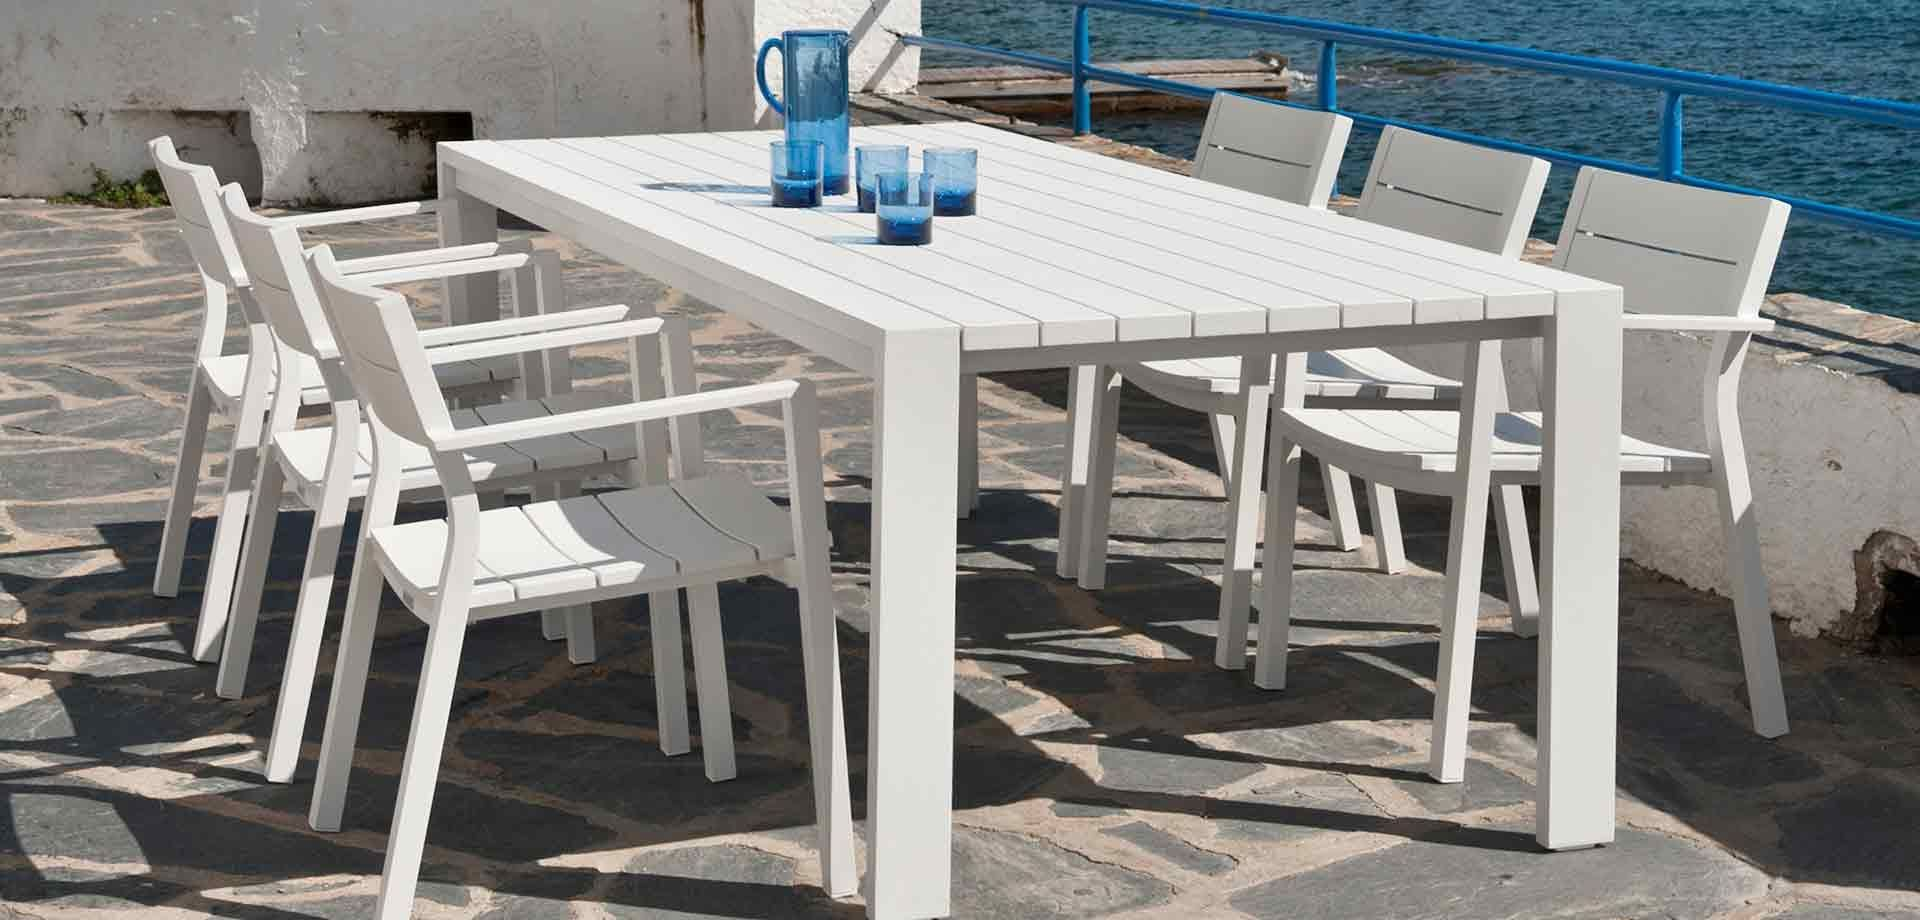 Pin By Prontoyoung On Outdoor Furniture Weatherproof Outdoor